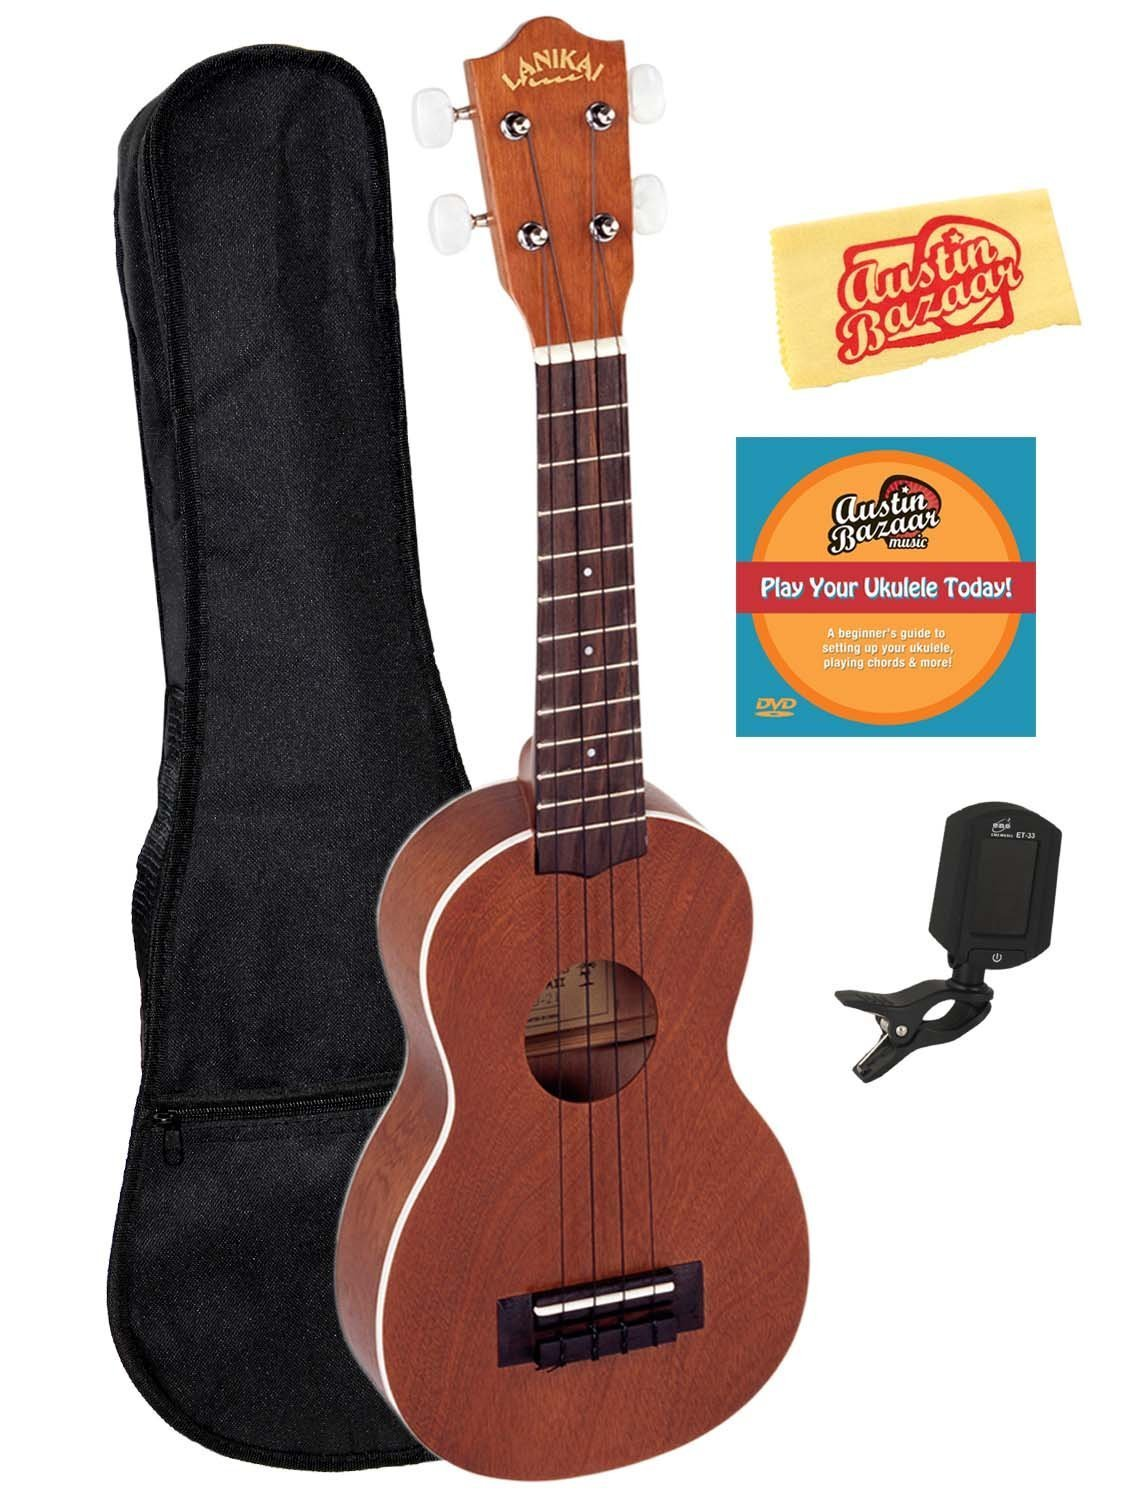 Kilauea 23 24 Concert Size Ukulele Zebrawood Acoustic Electric Onboard Tuner Product 6200 additionally 54333 likewise B01KU1CKV0 furthermore Whats The Difference Between A Lanikai And A Kala Ukulele And A Basic Ukulele Chord Chart as well Product. on oscar schmidt ukulele review